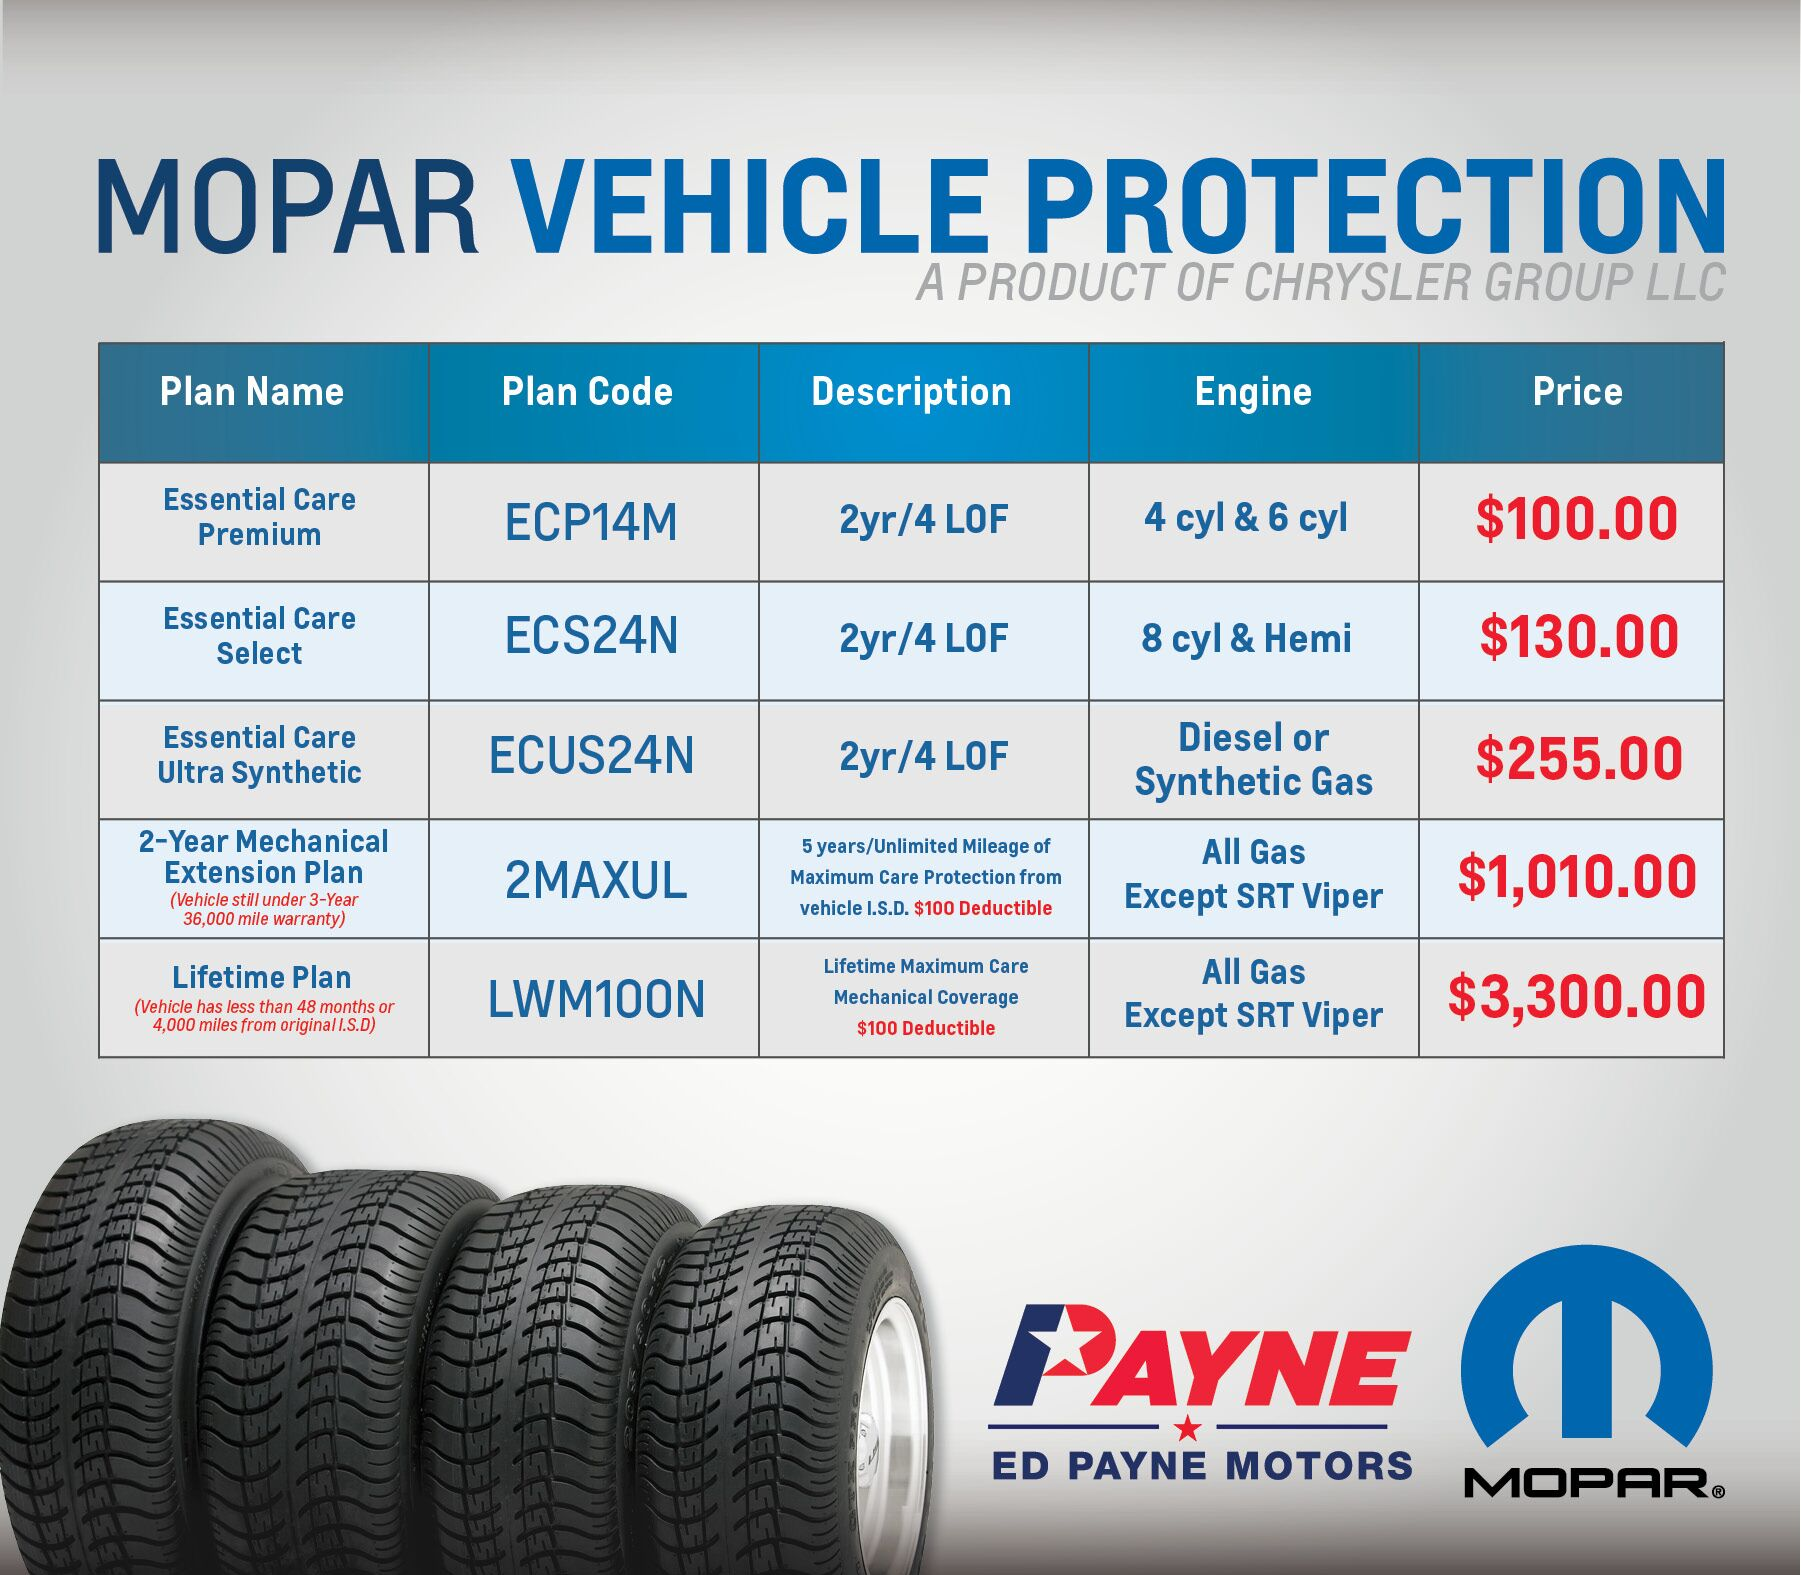 Mopar vehicle protection program ed payne motors for Ed payne motors mission